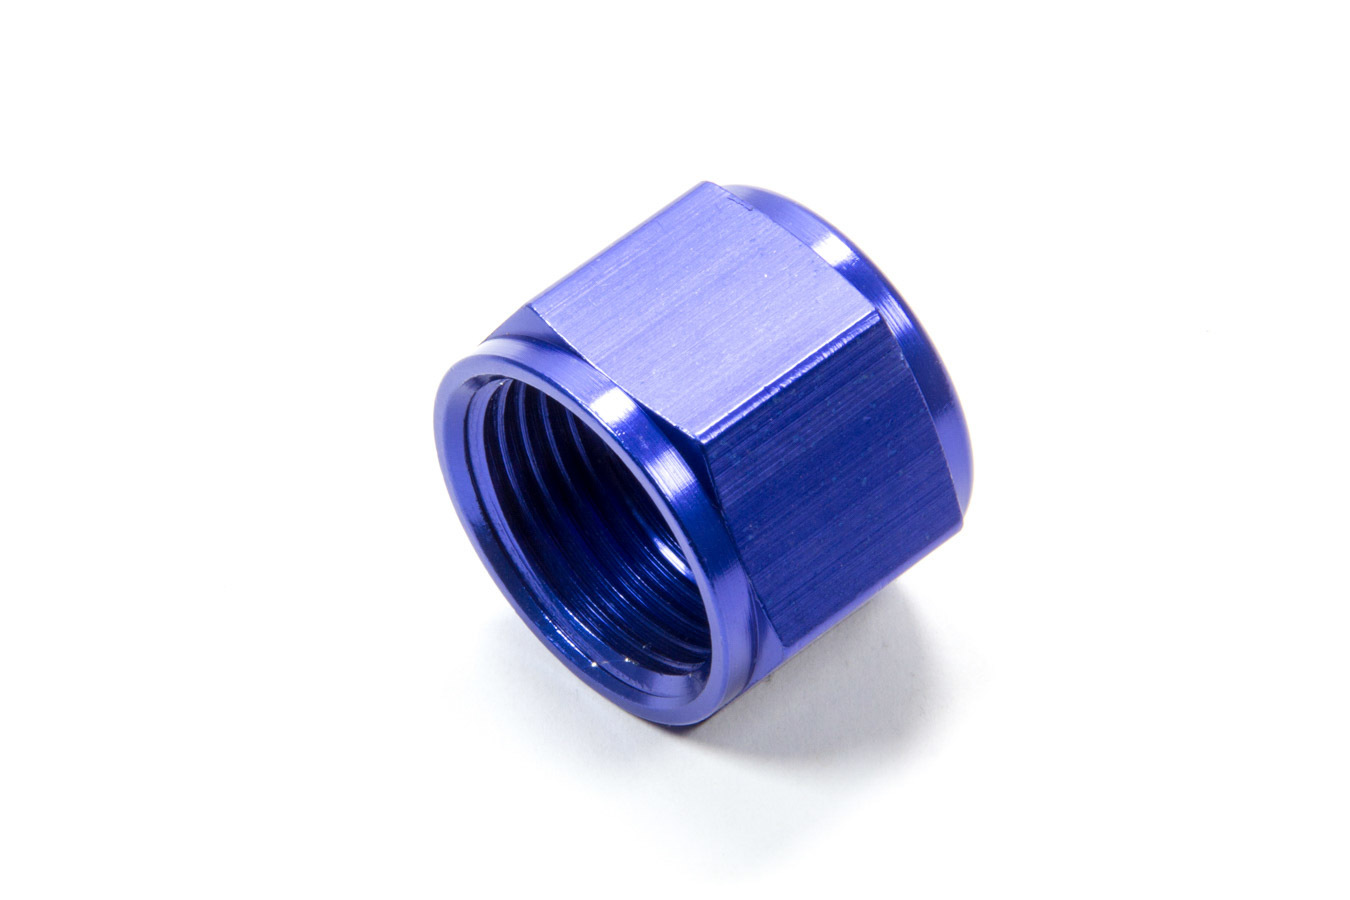 Fragola 492912 Fitting, Cap, 12 AN, Aluminum, Blue Anodize, Each